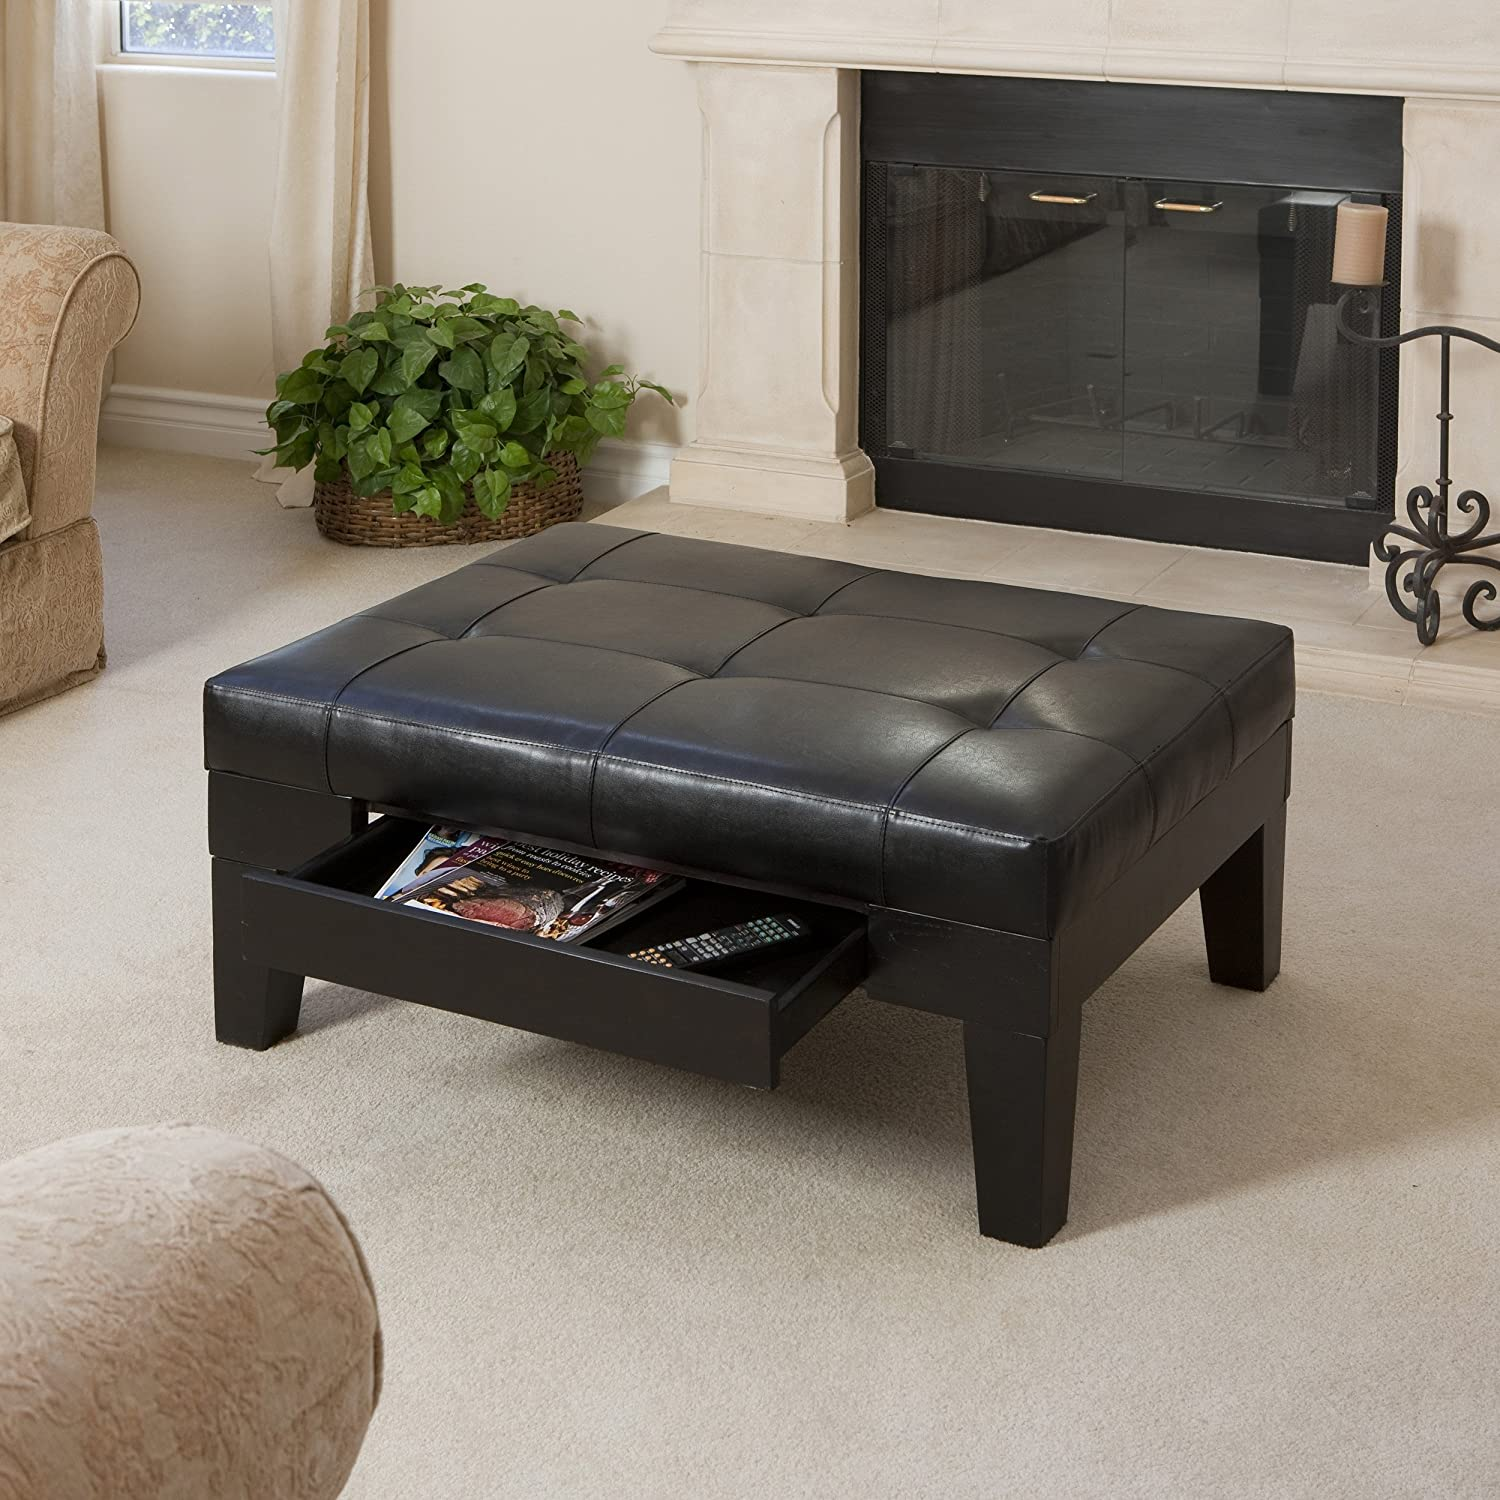 Amazon Tucson Espresso Leather Tufted Top Coffee Table w